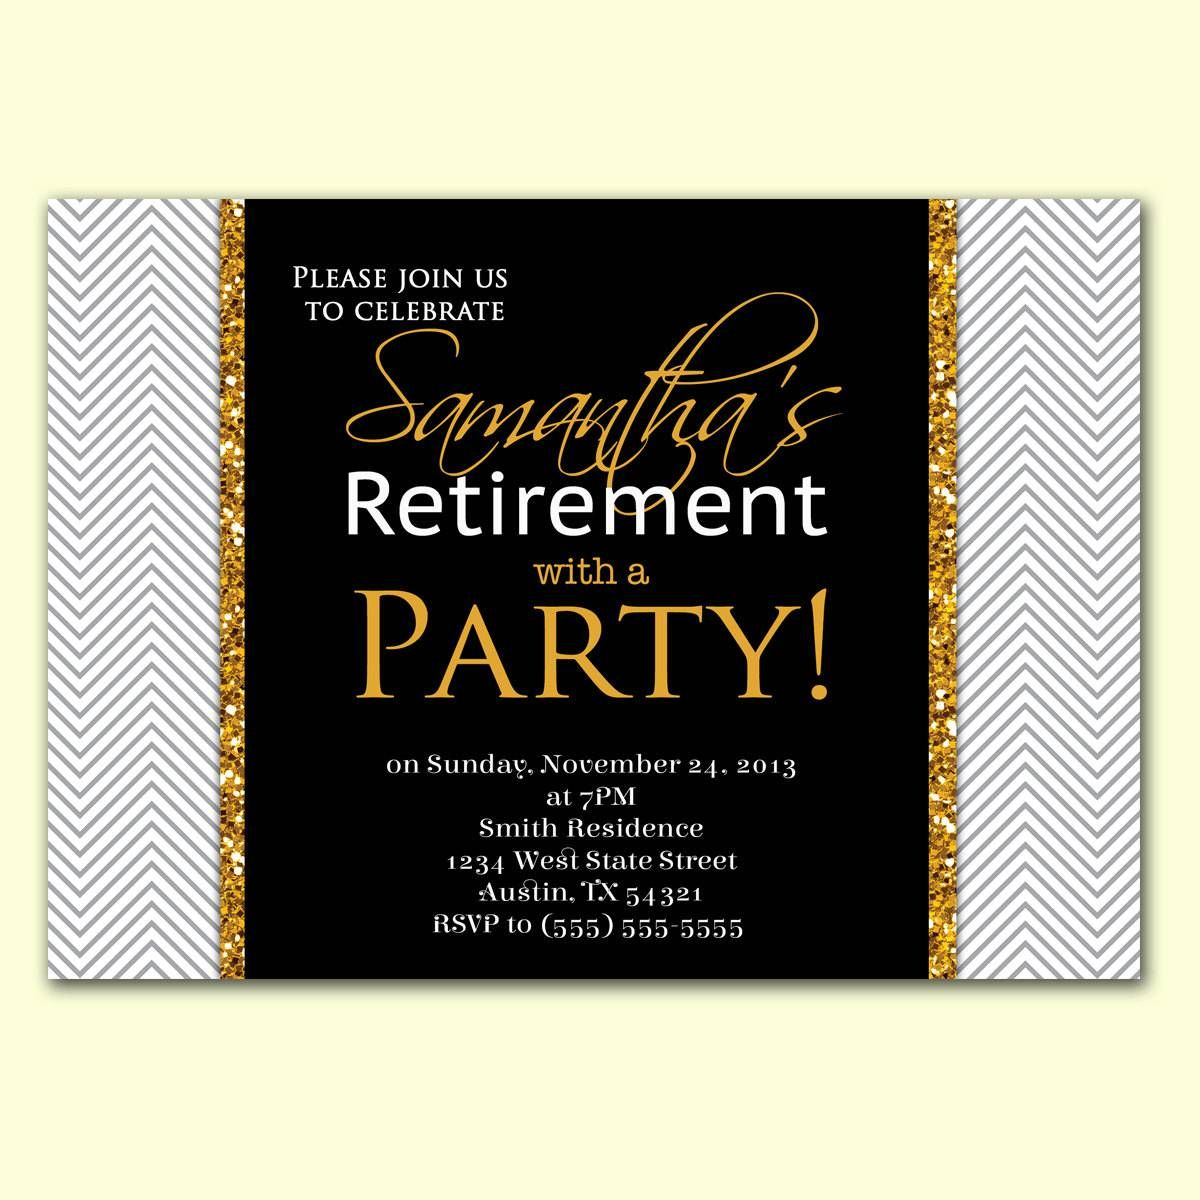 Retirement Party Invitation Wording In Hindi invites – Printable Retirement Party Invitations